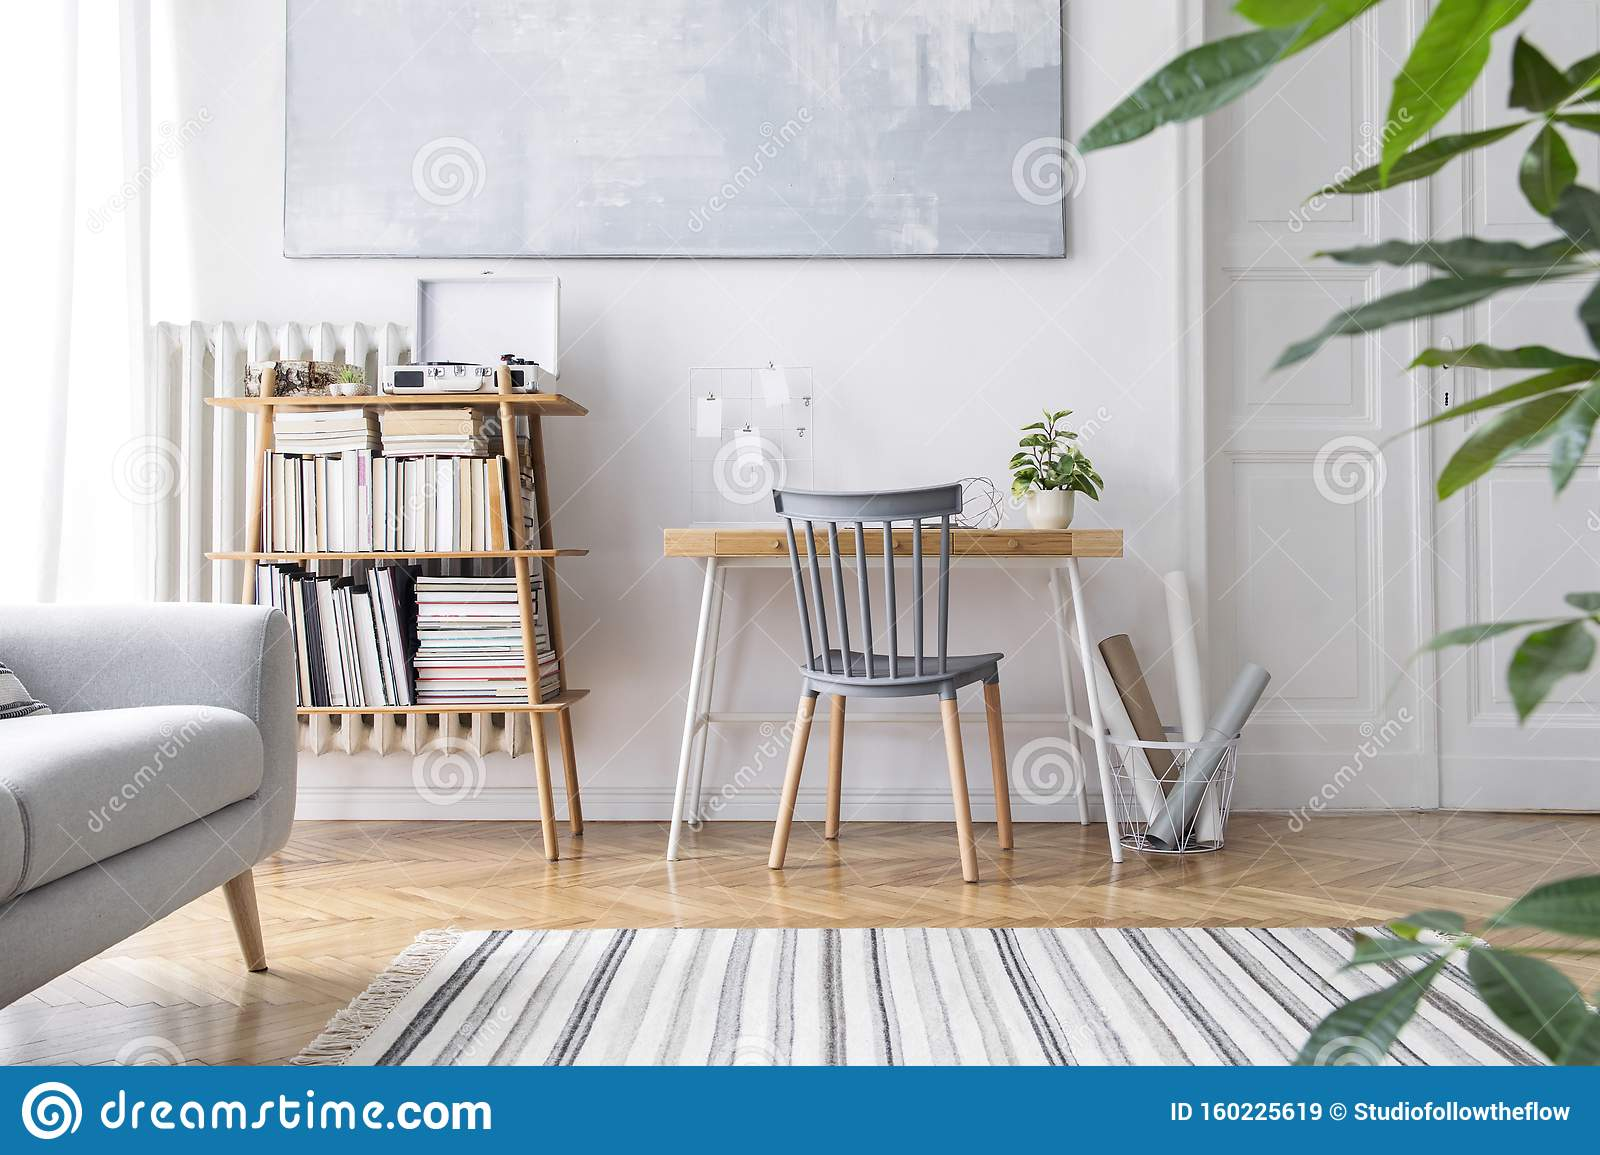 24 067 Open Space Home Decor Photos Free Royalty Free Stock Photos From Dreamstime